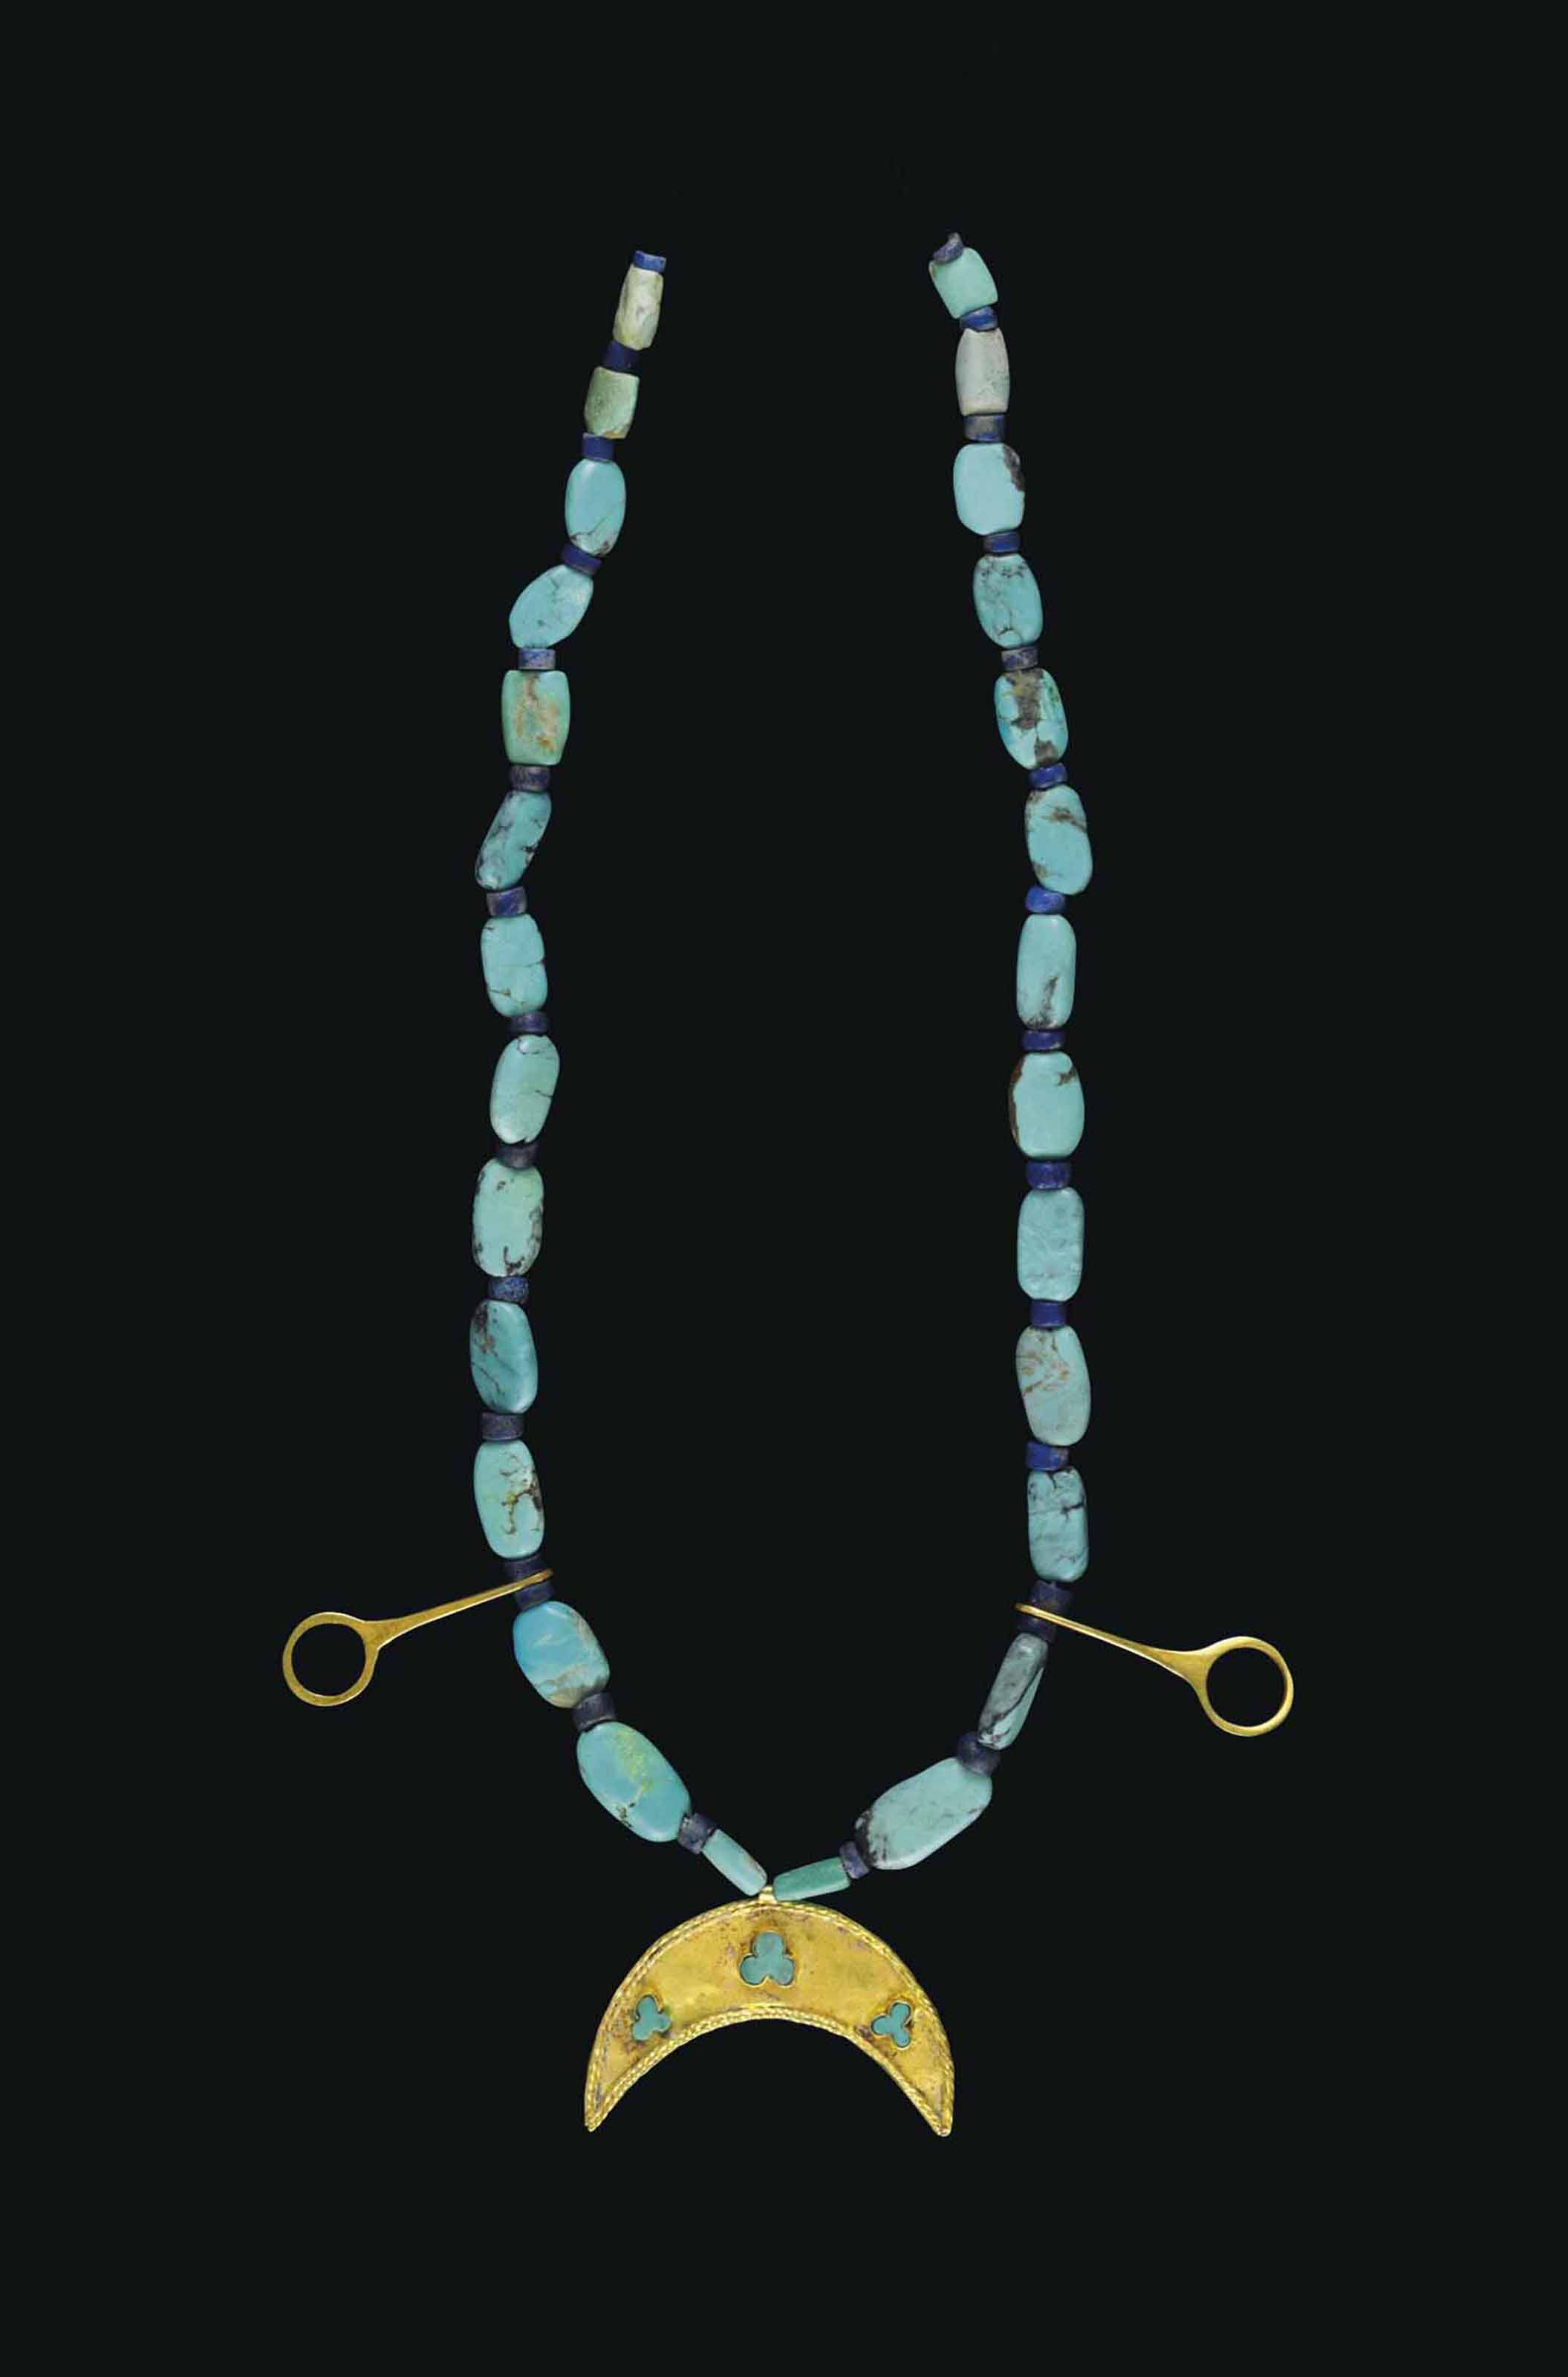 A WESTERN ASIATIC GOLD, TURQUOISE AND LAPIS LAZULI BEAD NECKLACE